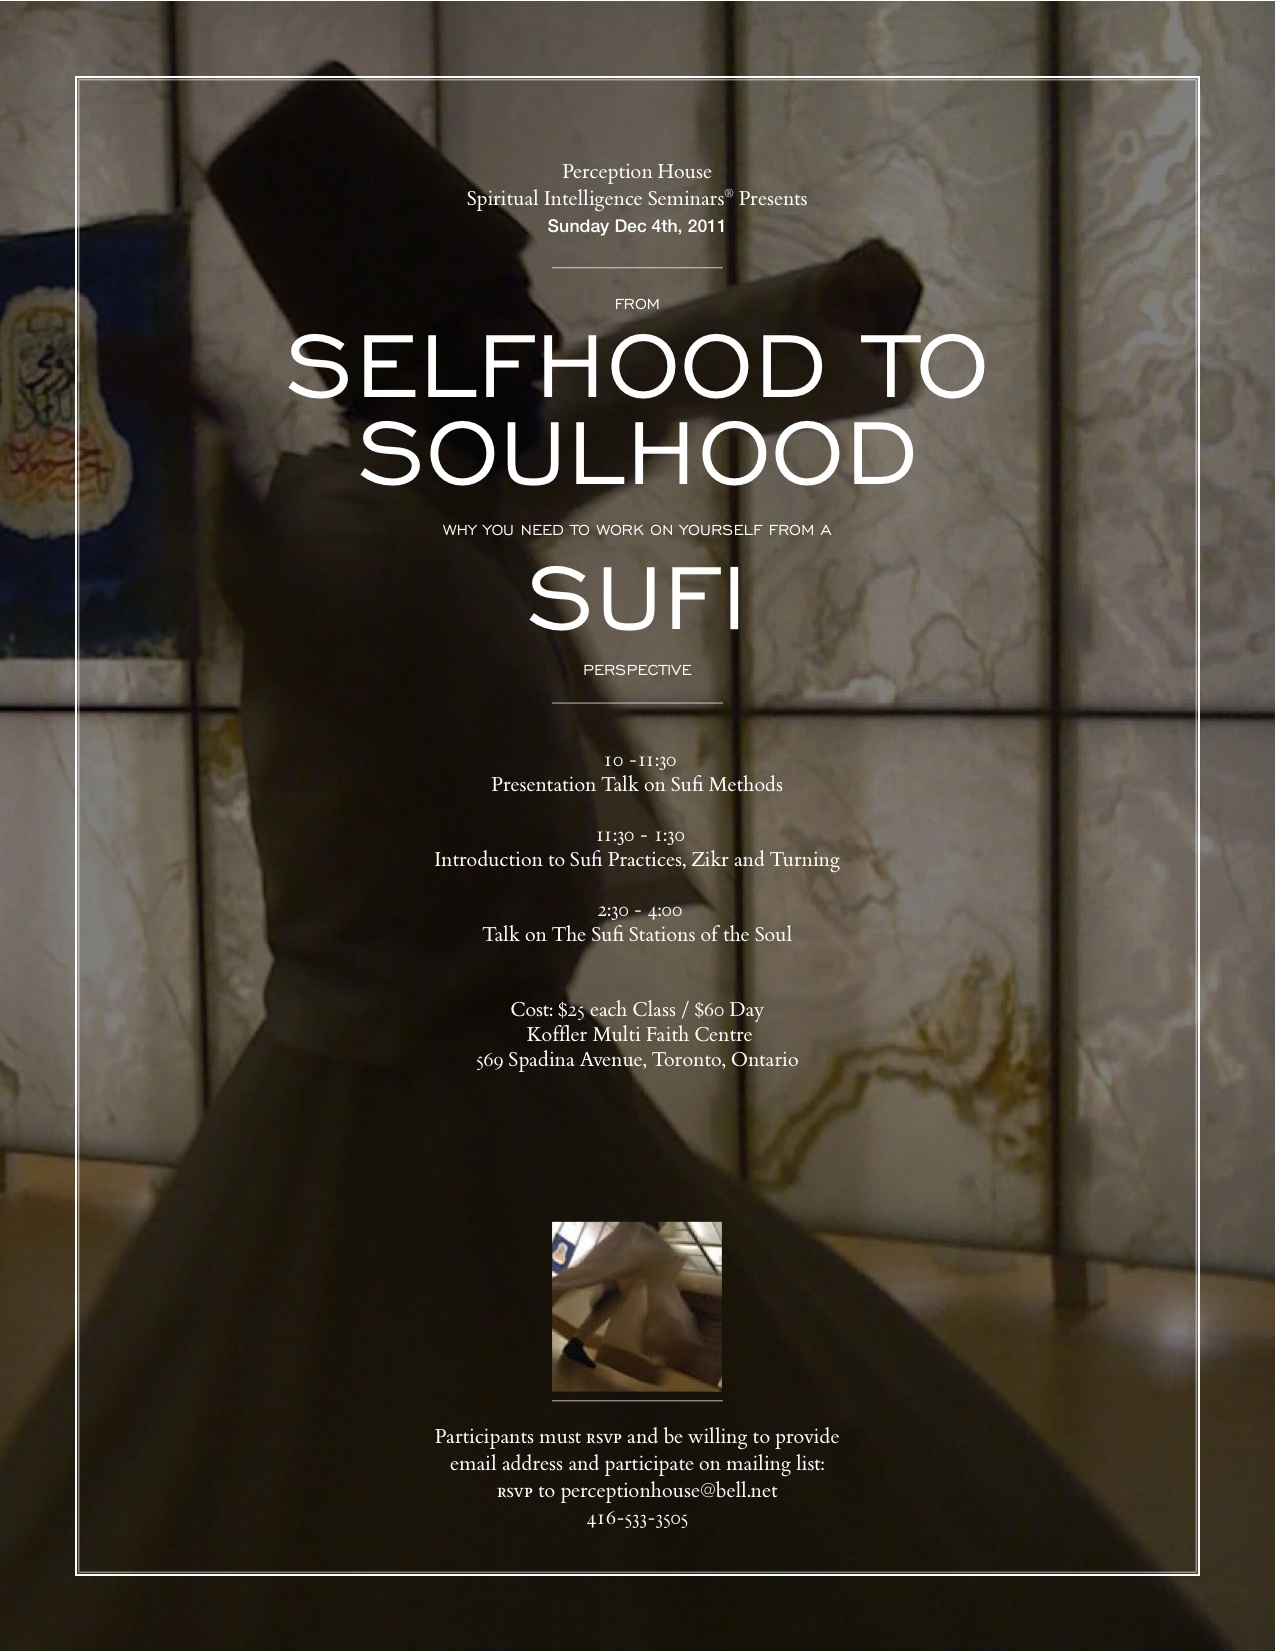 Part II: From Selfhood To Soulhood: Why We Need To Work On Our Self From A Sufi Perspective - Ph Posters V1 Dragged 2